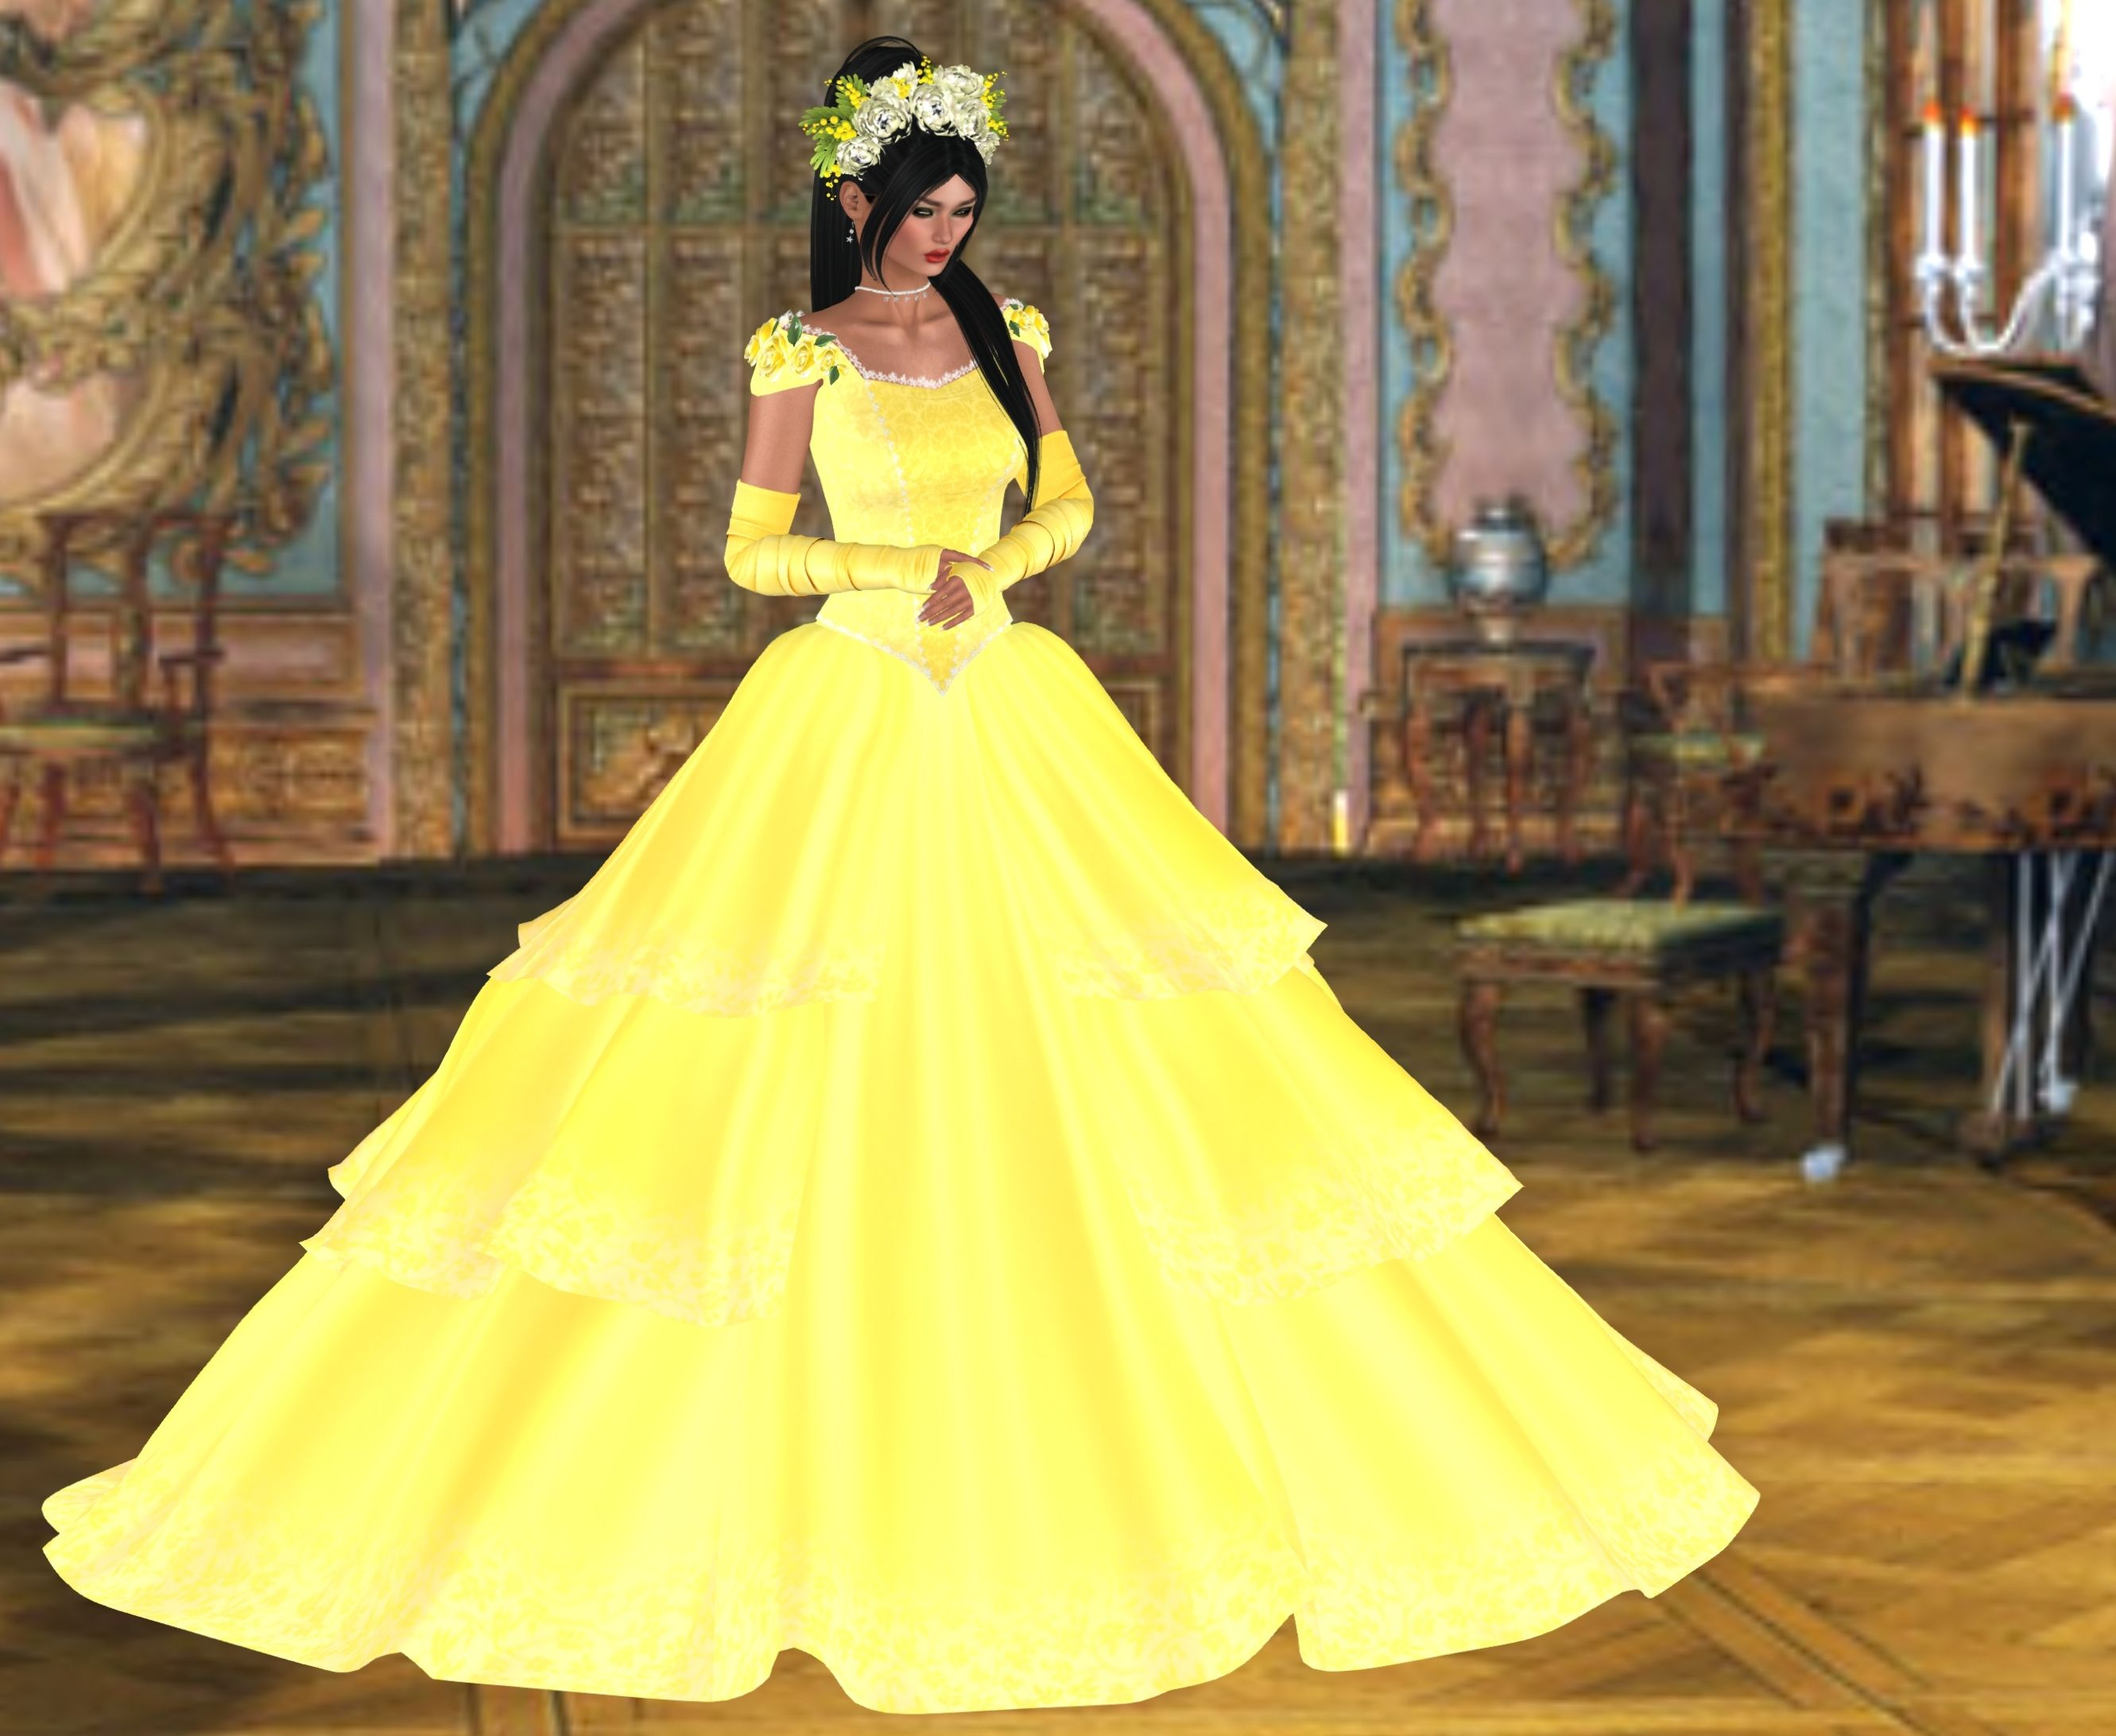 Belle Of The Ball With Images Toddler Hair Sims 4 Sims 4